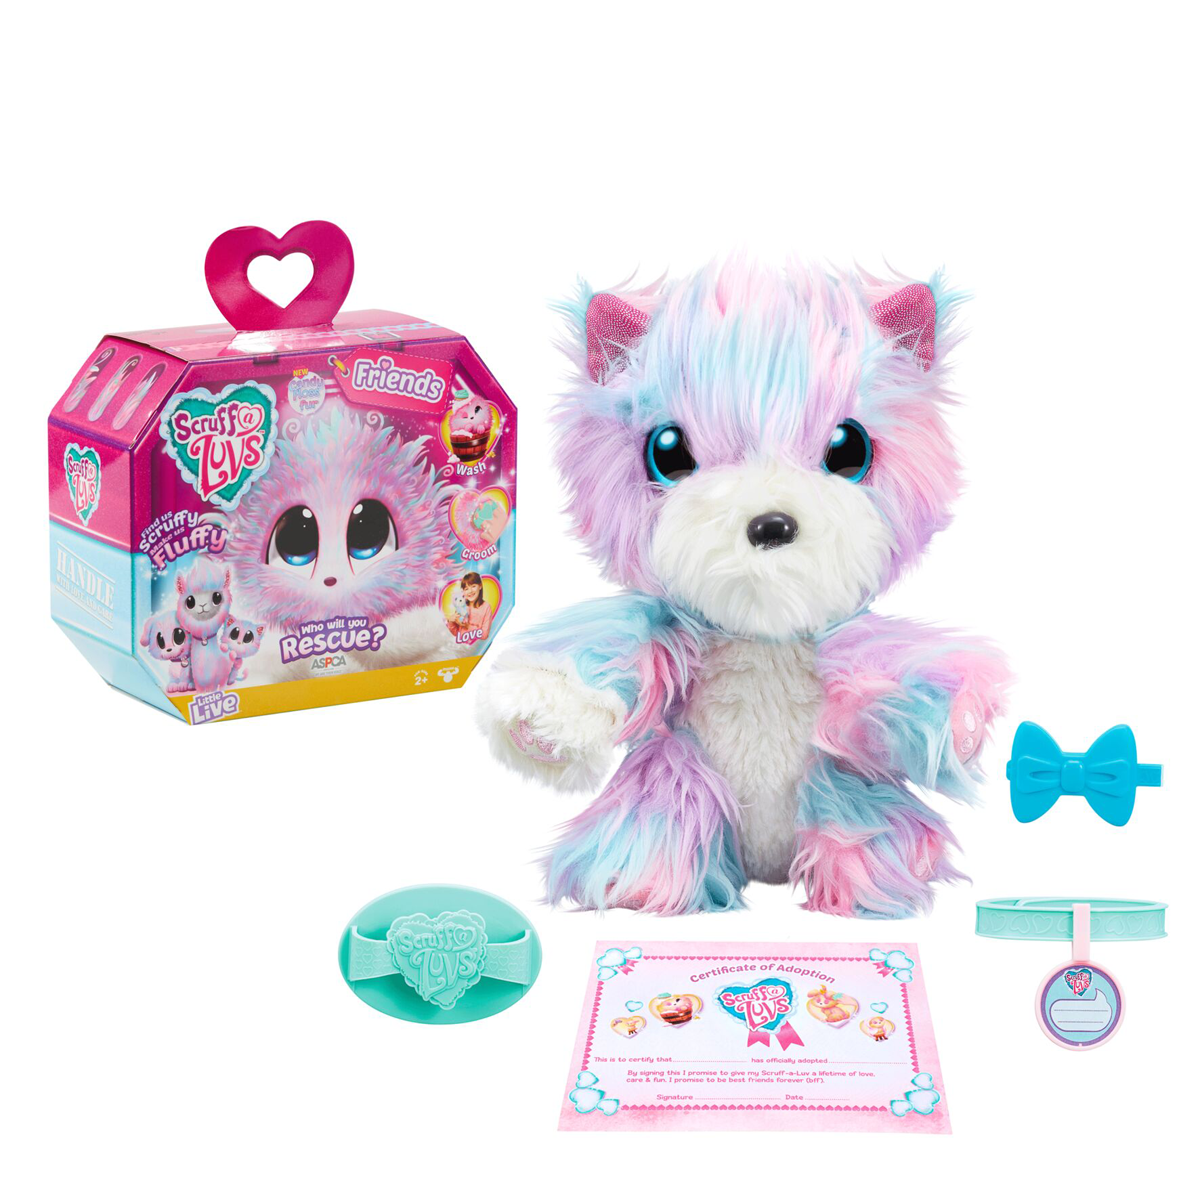 Scruff A Luvs Rescue Pet Candy Floss Styles Vary The Entertainer Popular Kids Toys Princess Toys Moose Toys